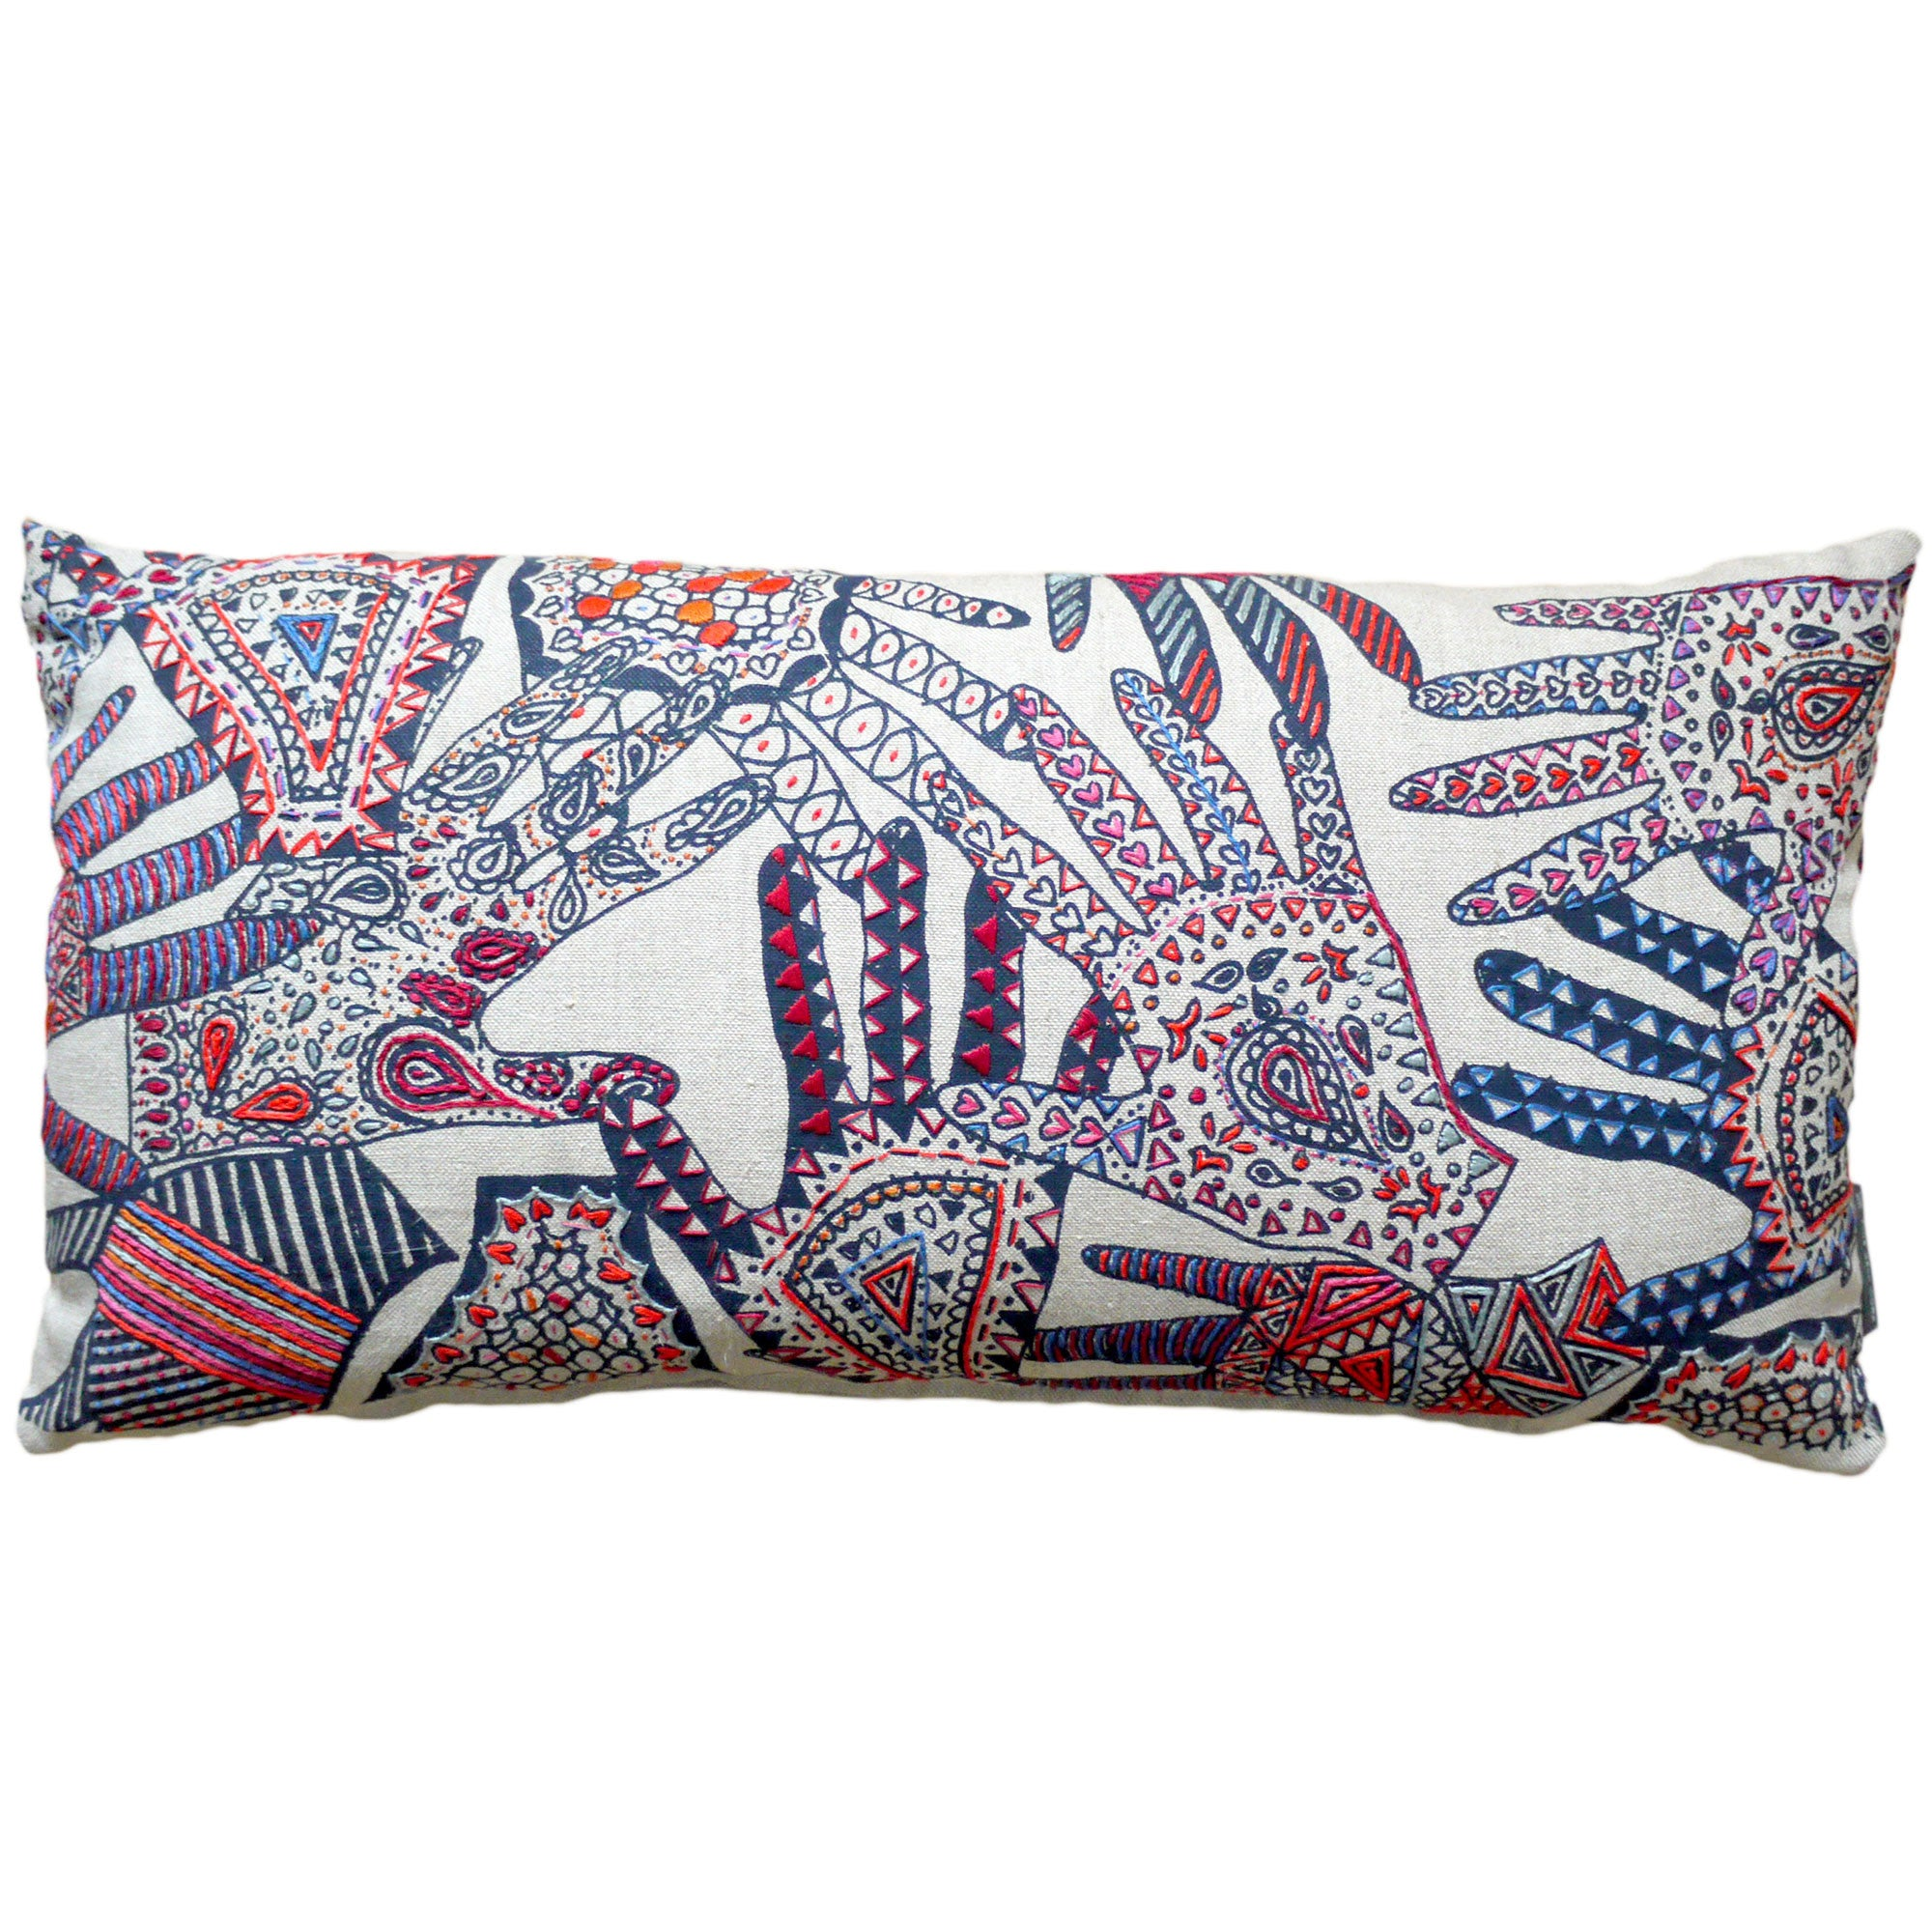 London College of Fashion Embroidered Hands Cushion Fine Cell Work